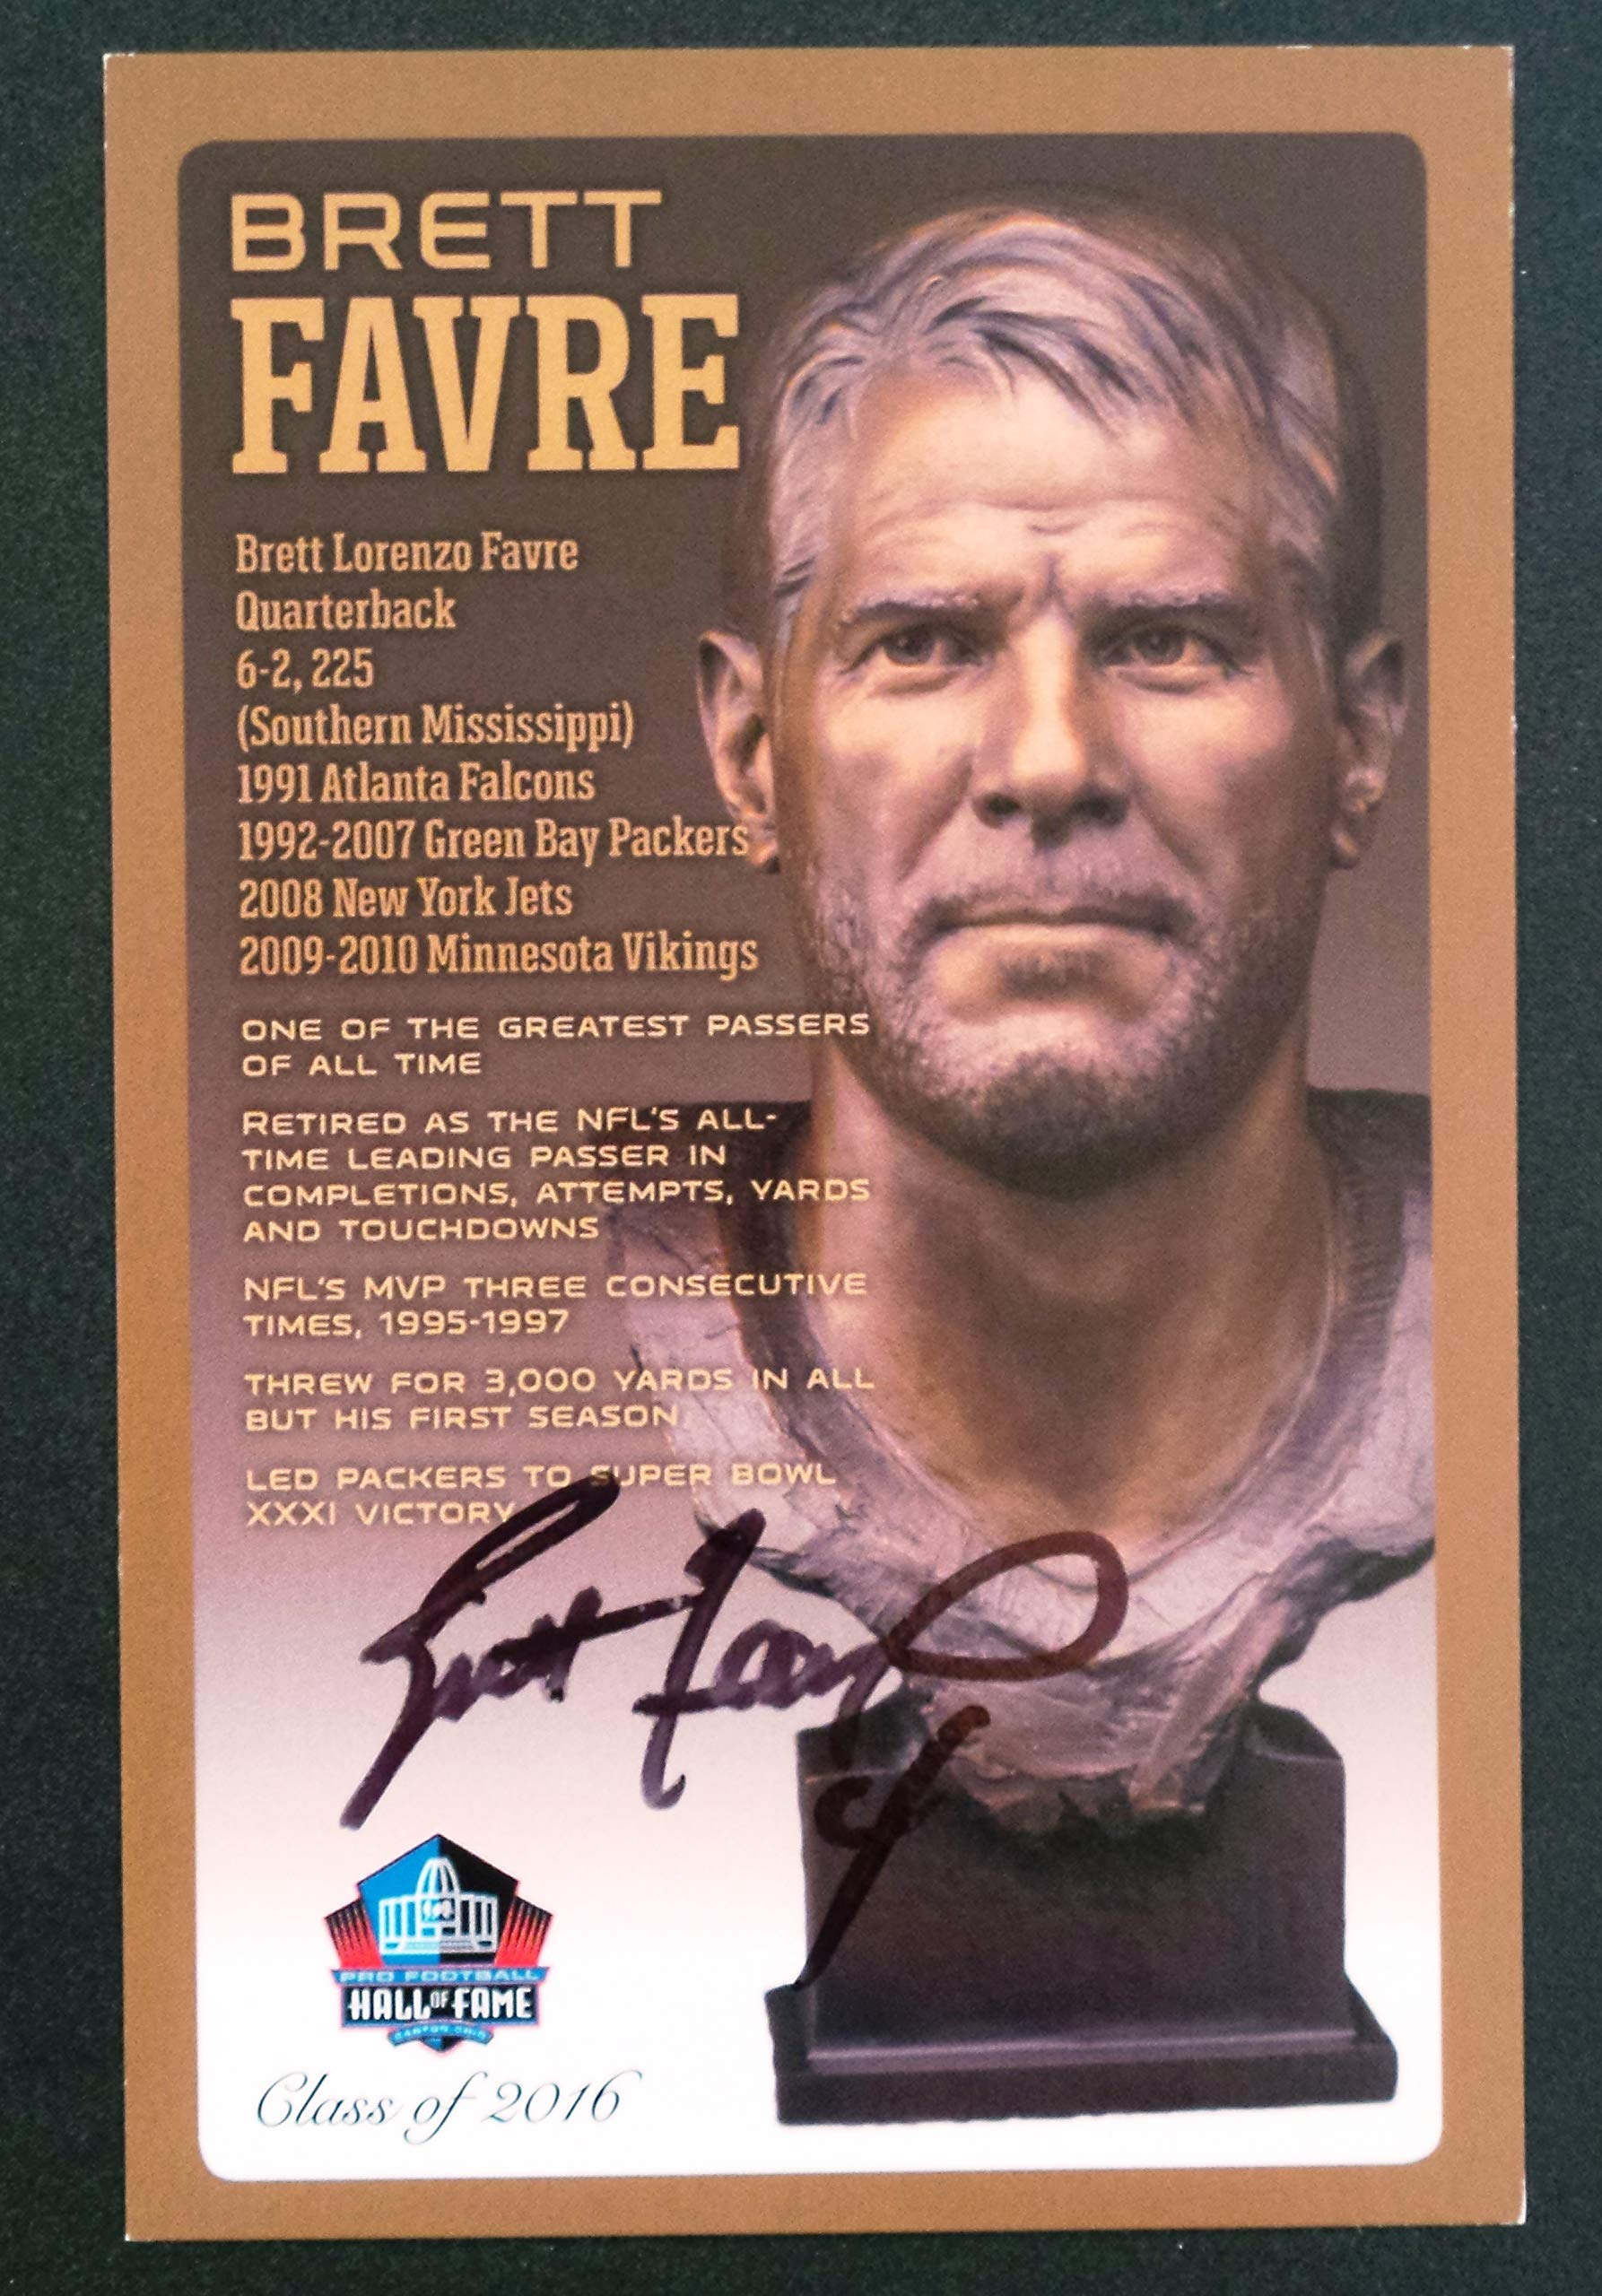 PRO FOOTBALL HALL OF FAME Brett Favre NFL Bronze Bust Set Card Autographed Limited Edition 1 of 150 by PRO FOOTBALL HALL OF FAME